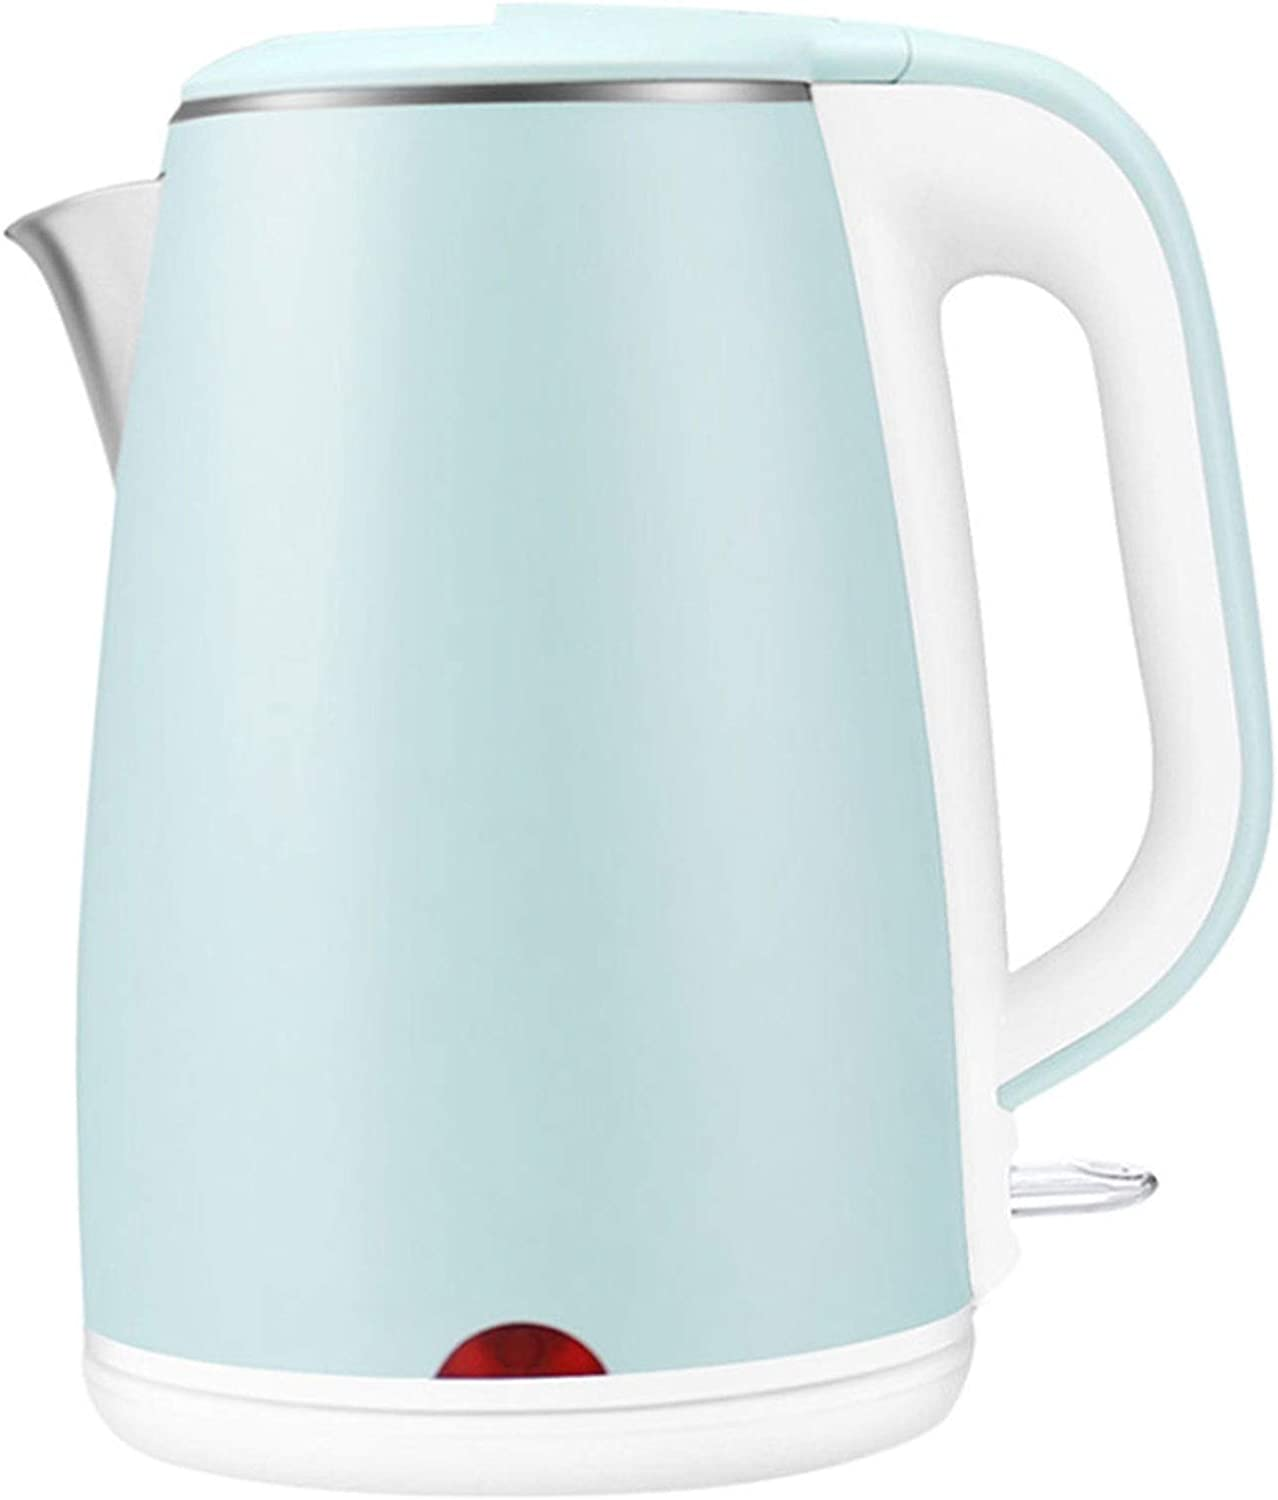 Wsaman Household free Electric Kettle Anti-Dry Steel Stainless Kettl Max 86% OFF